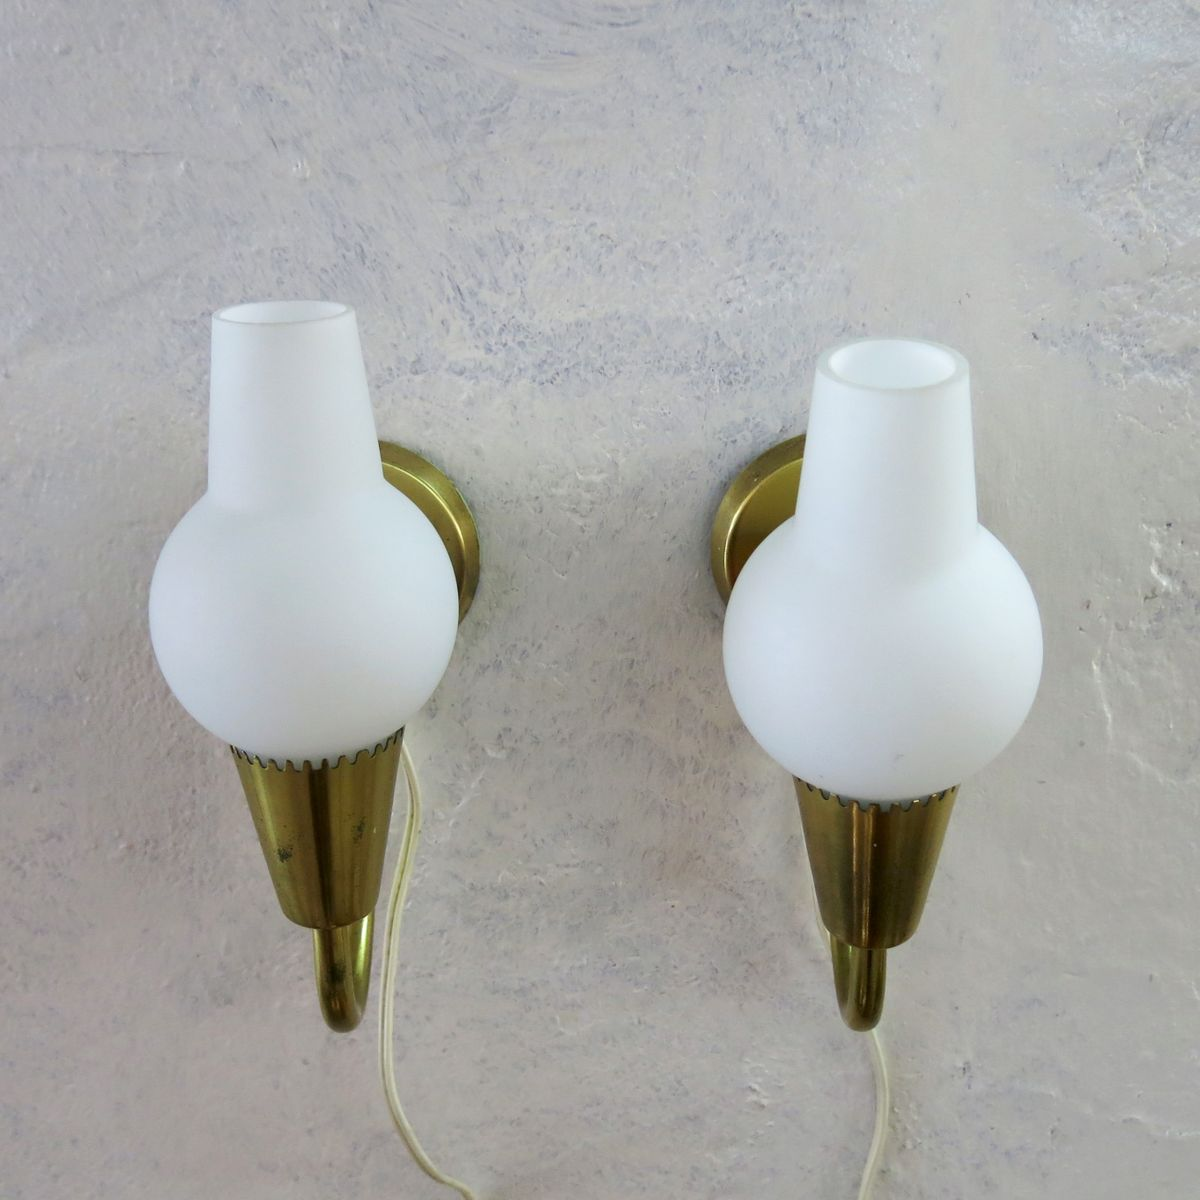 Vintage Danish Opaline Wall Lights, Set of 2 for sale at Pamono